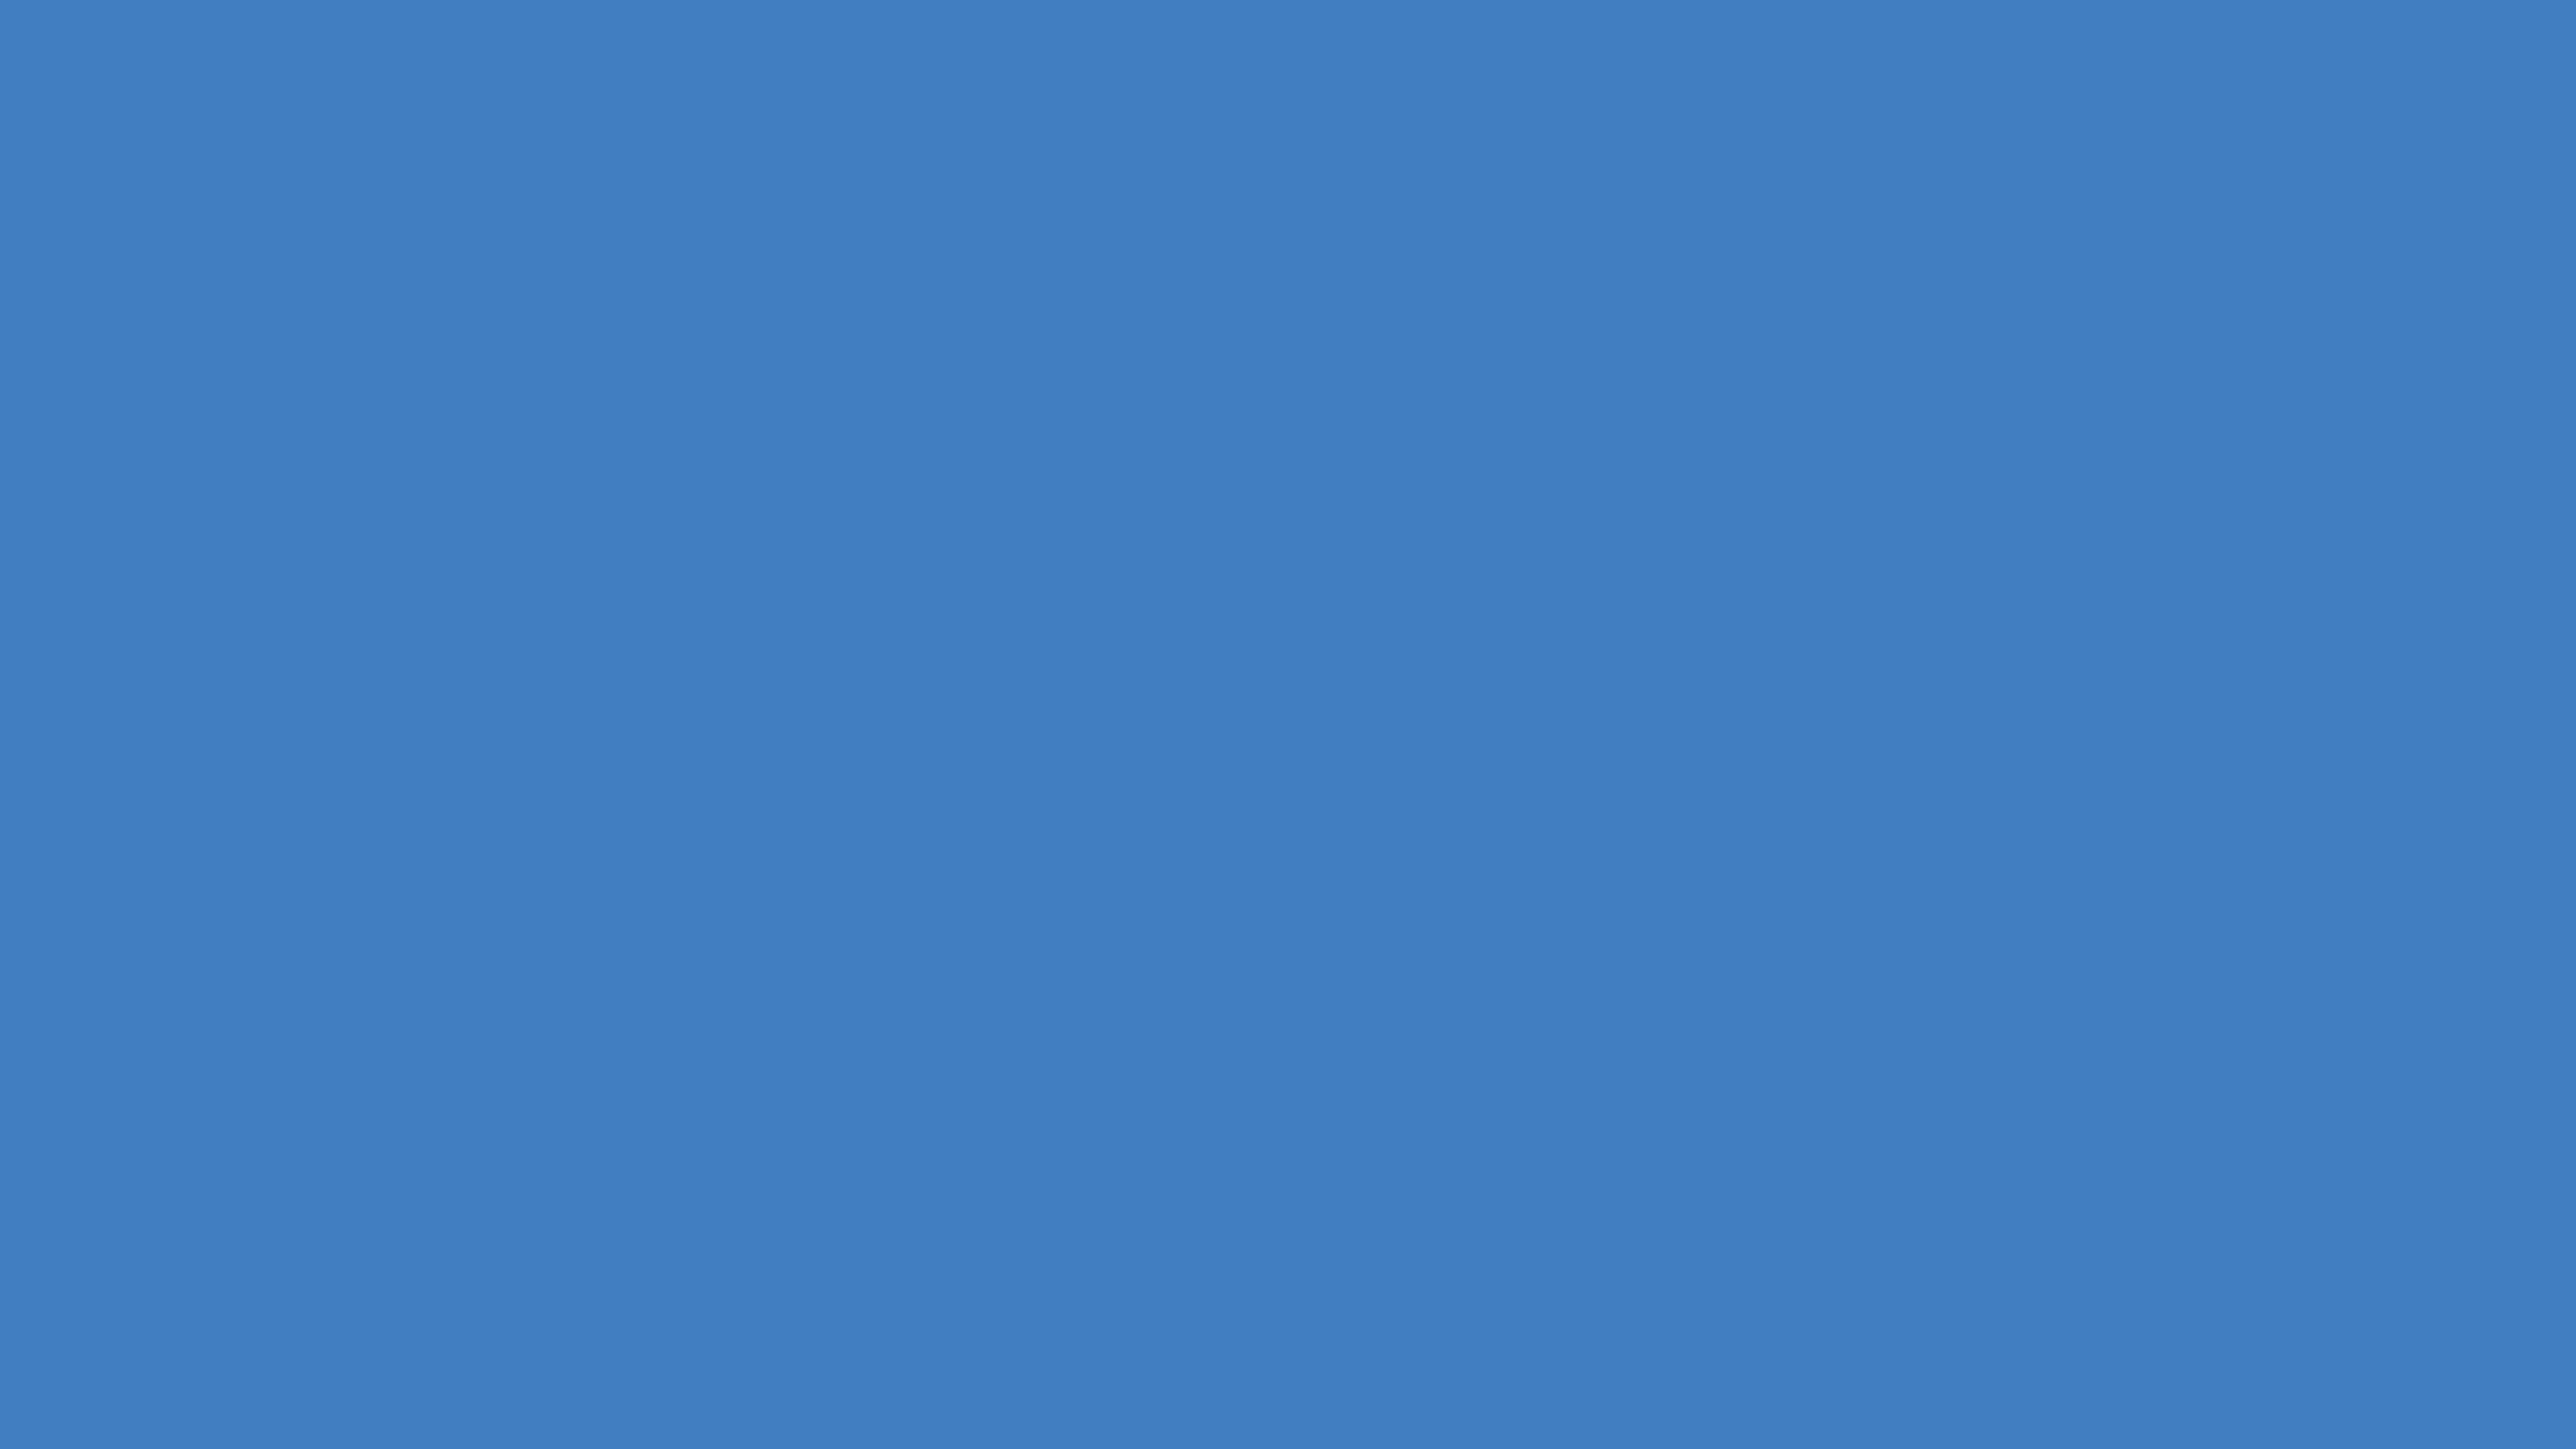 3840x2160 Tufts Blue Solid Color Background